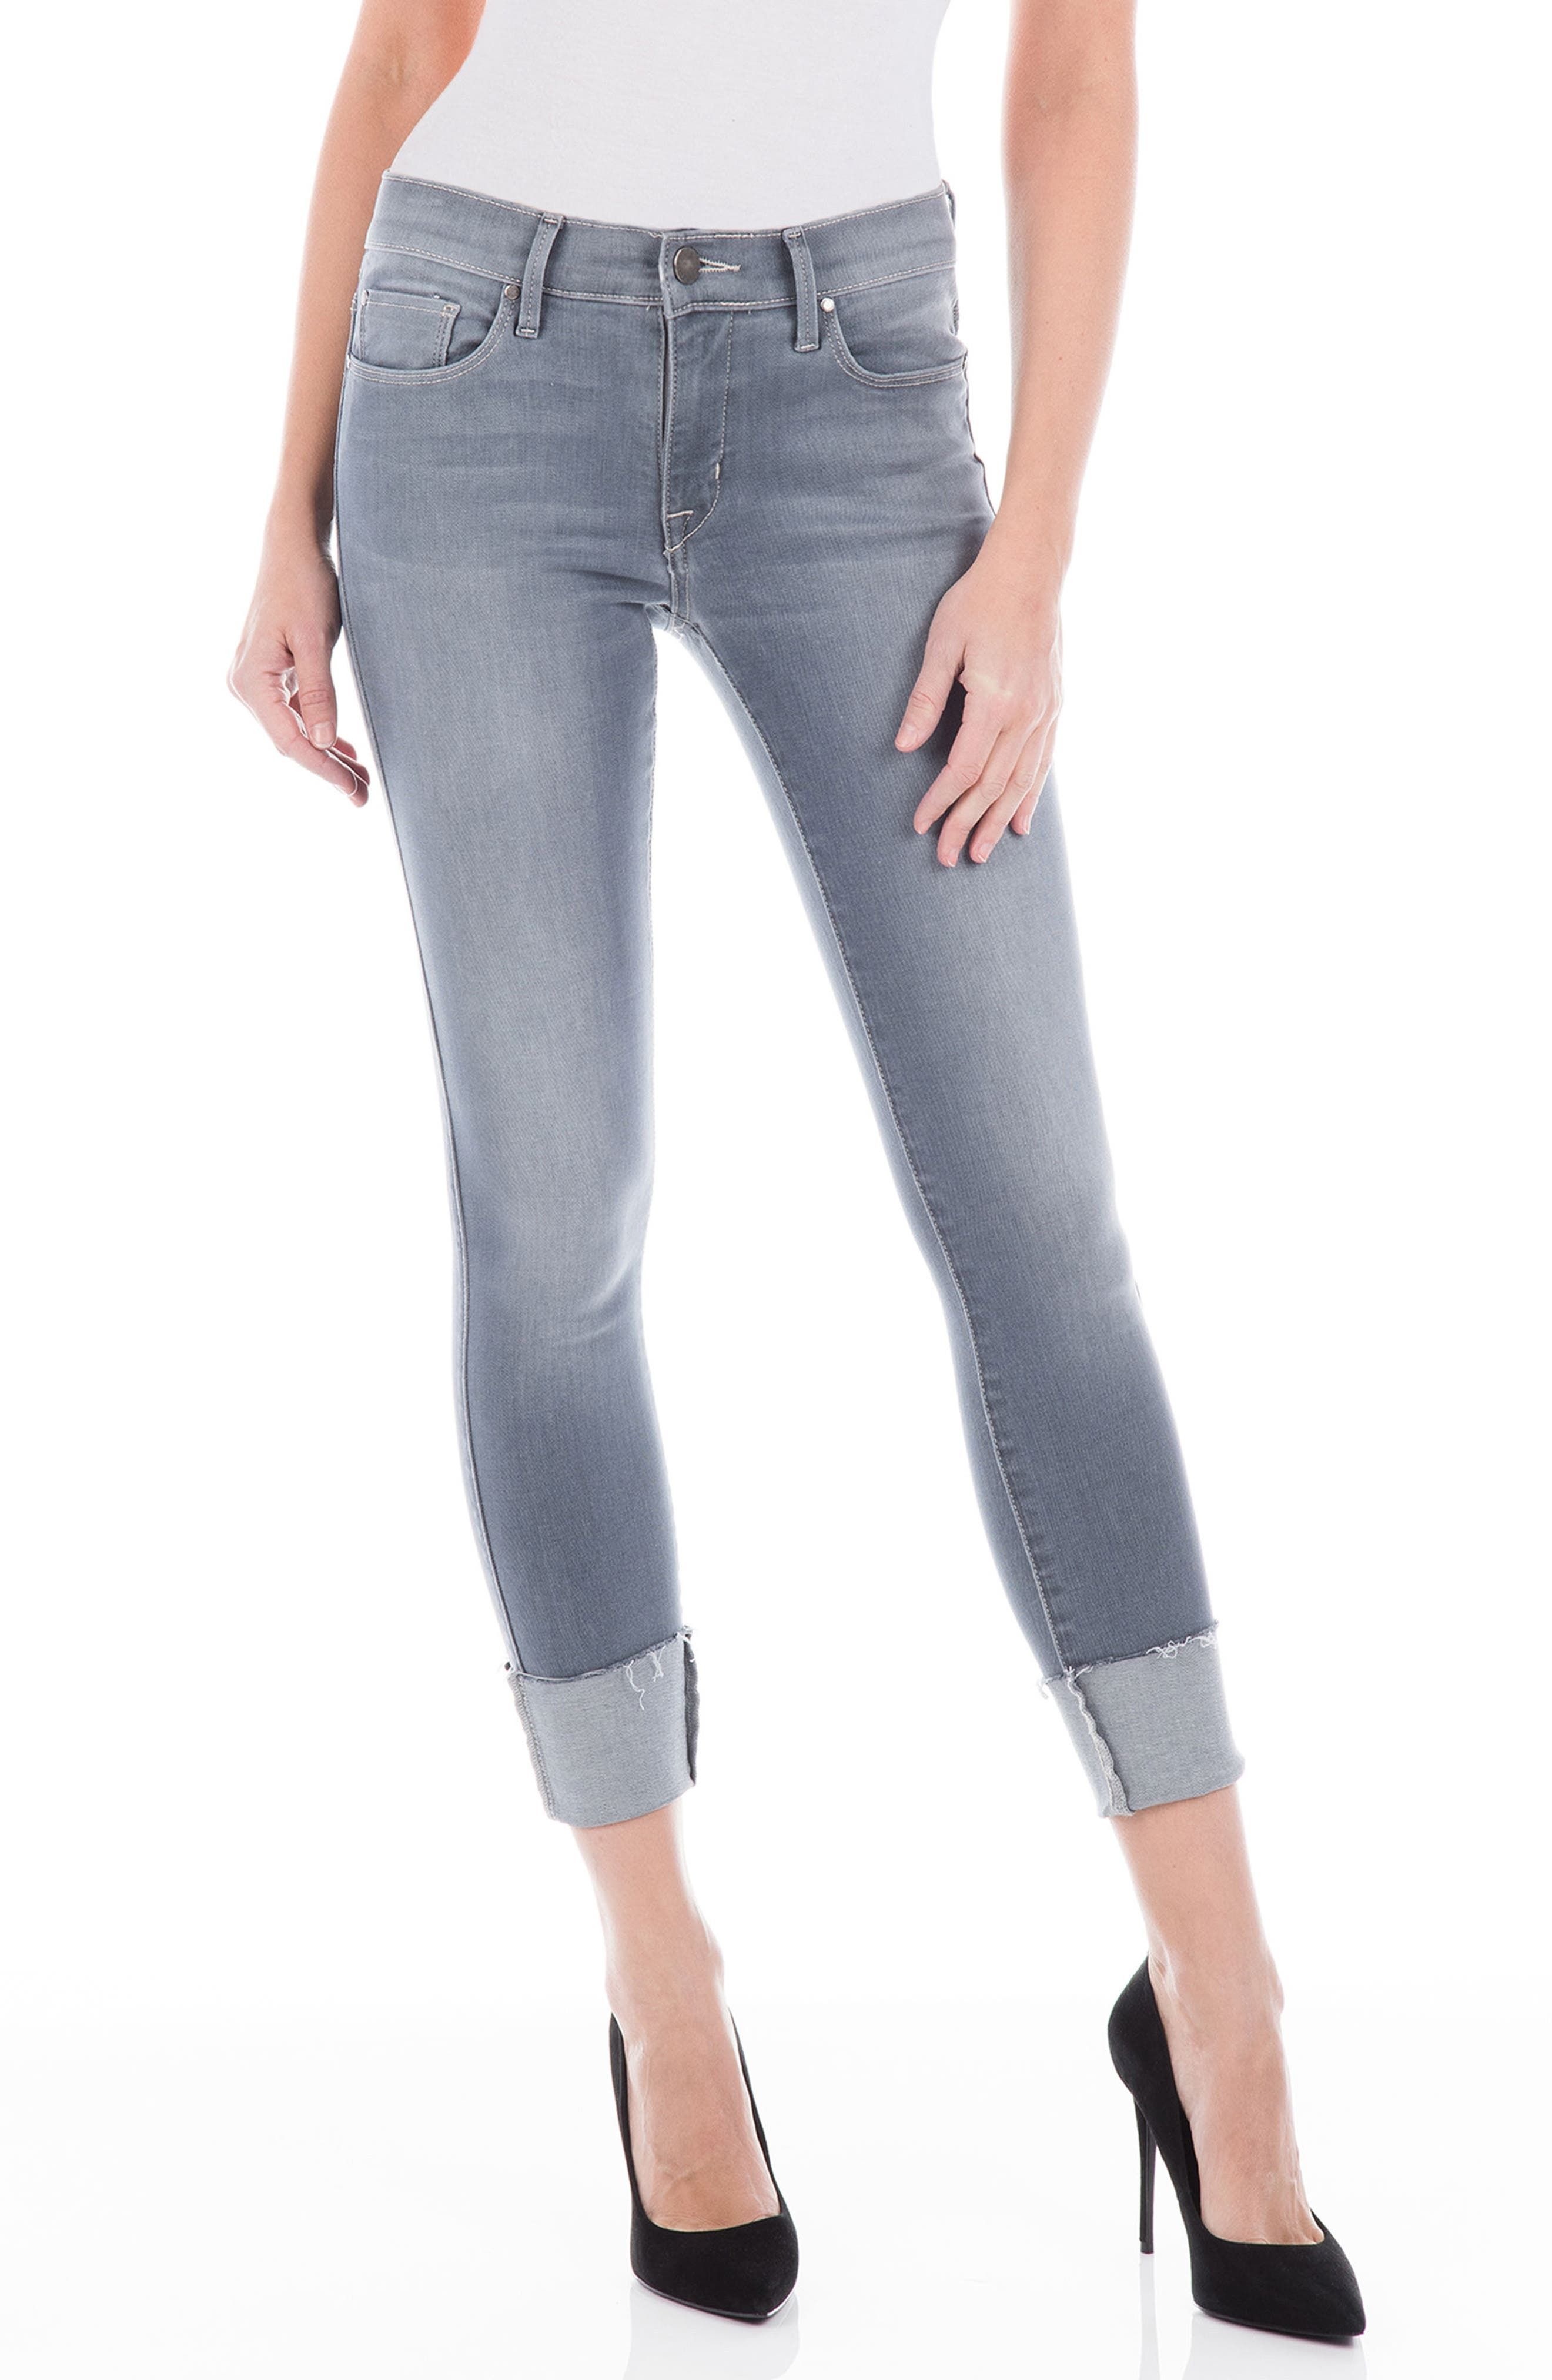 Belvedere Crop Skinny Jeans,                             Main thumbnail 1, color,                             020